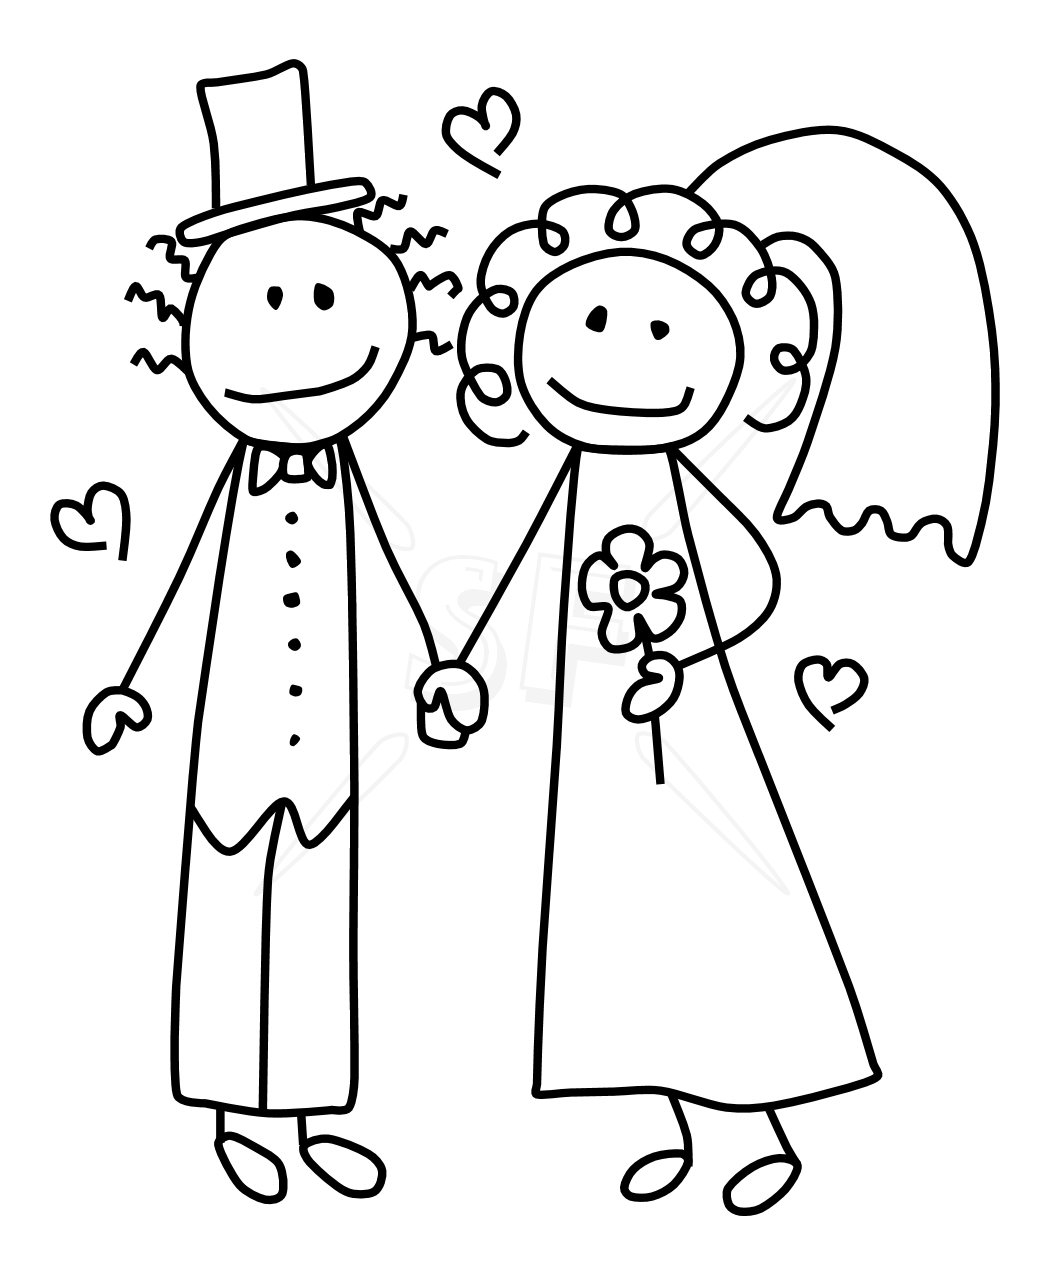 hight resolution of bride and groom clipart image 42966